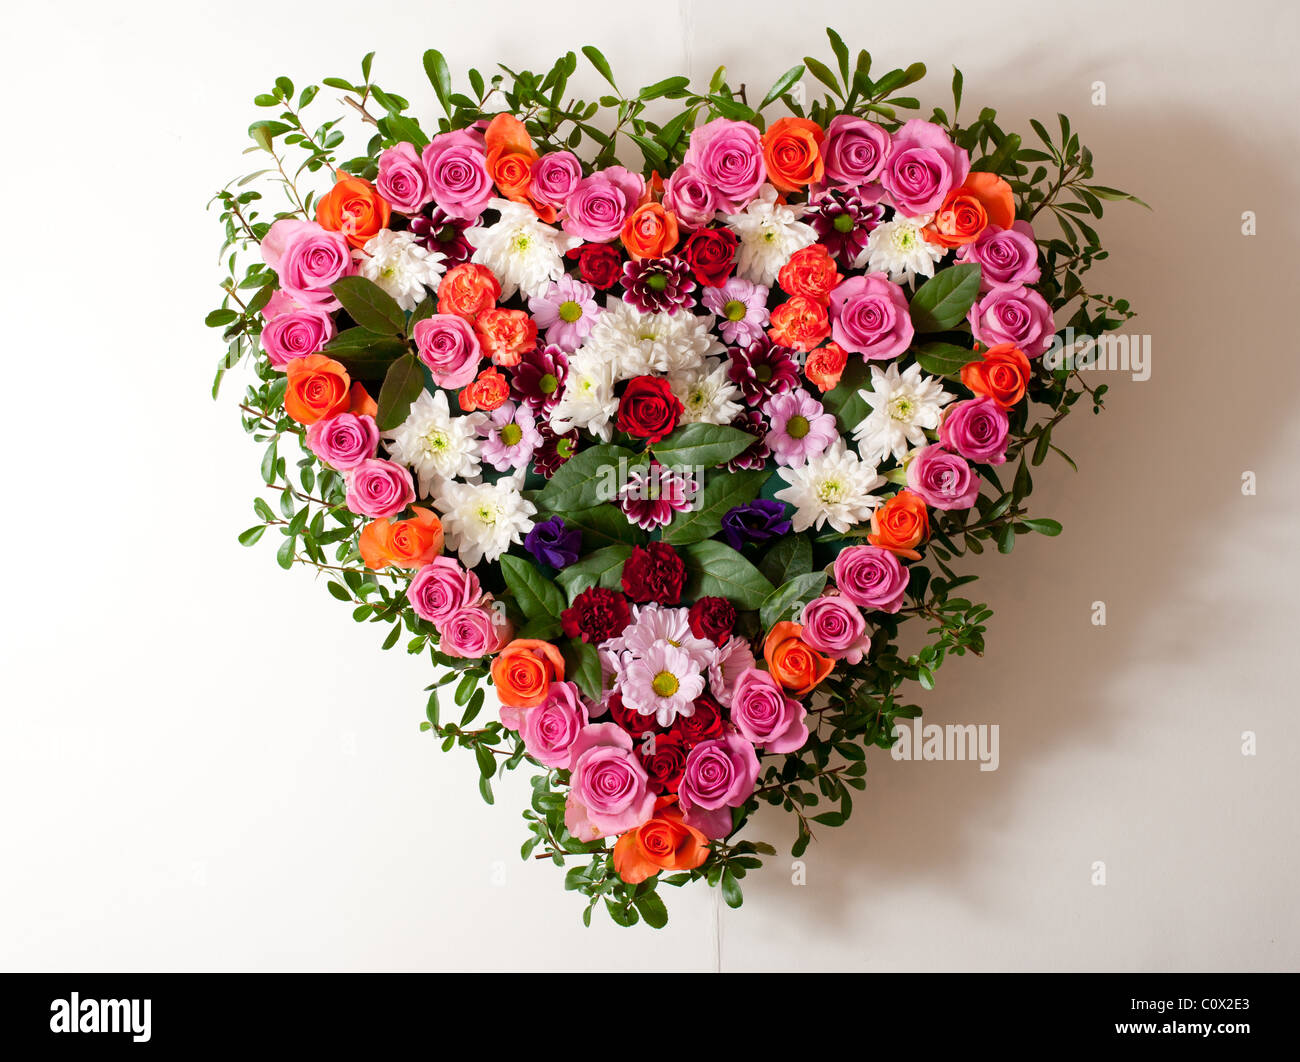 Heart Shaped Funeral Flowers Stock Photo 34993451 Alamy